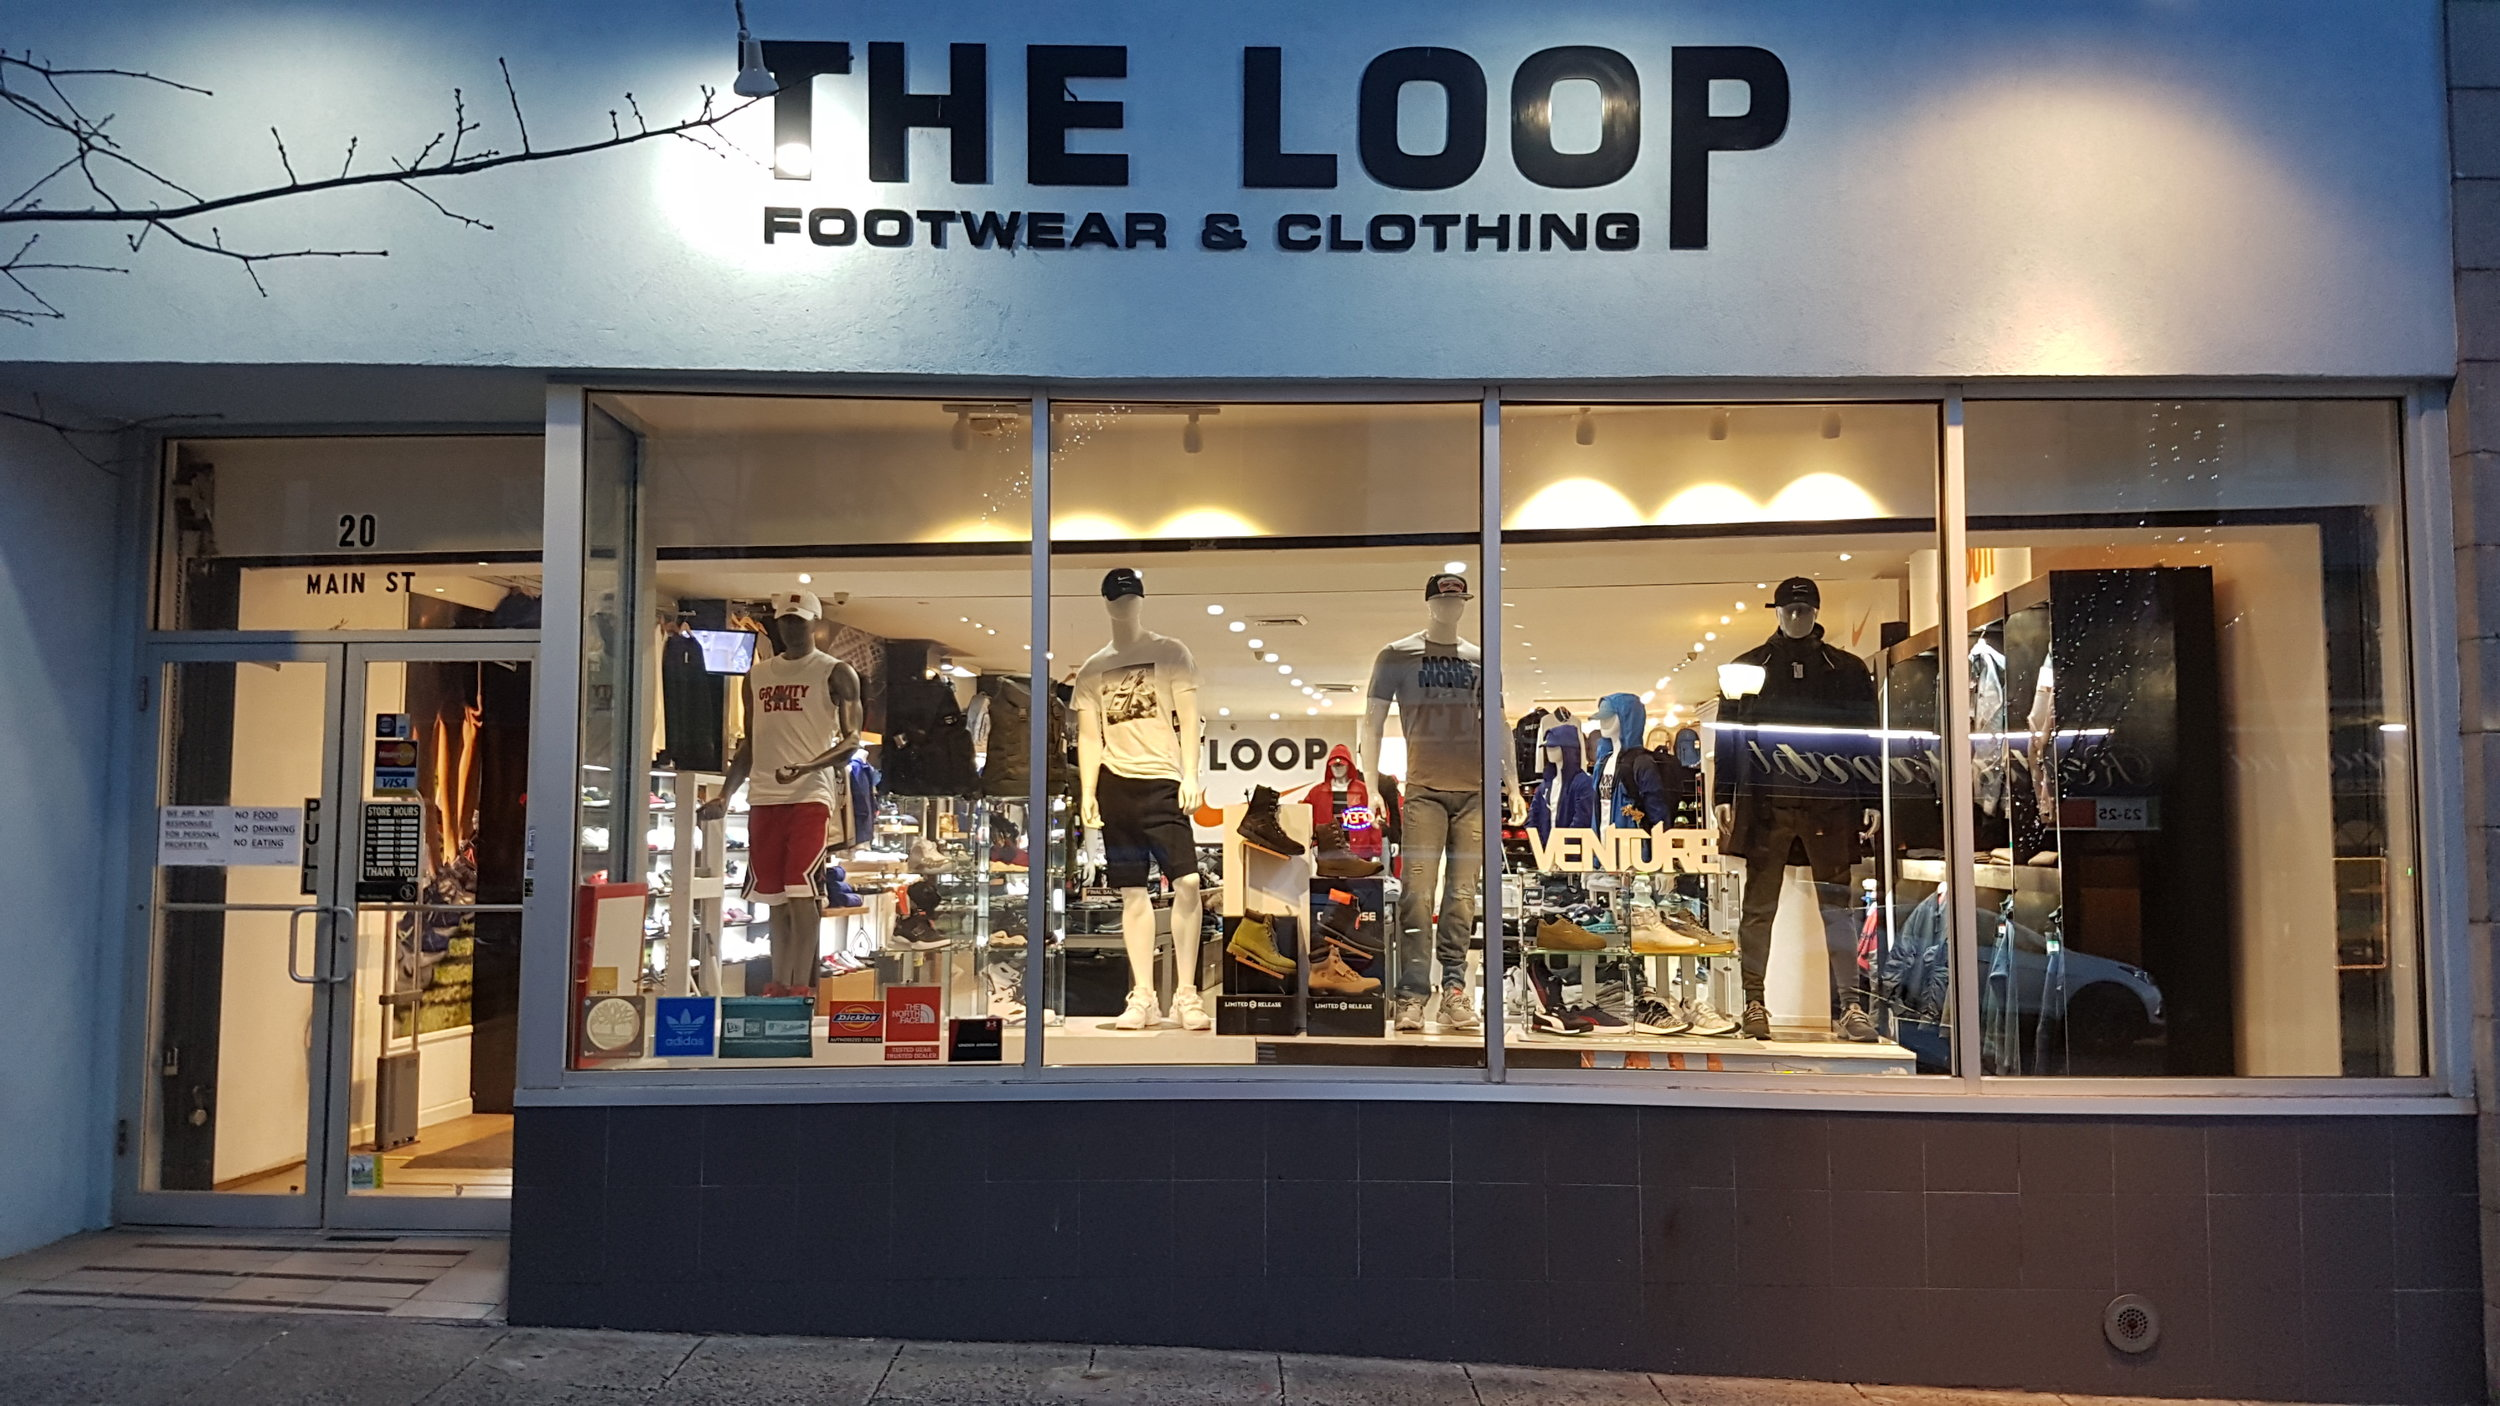 THE LOOP, Yonkers - 20 Main StreetYonkers, NY 10701TEL: (914) - 476 - 3147FAX: (914) - 476 - 3428Open Hour: 10am - 7pmEMAIL: dukechoe62@yahoo.com